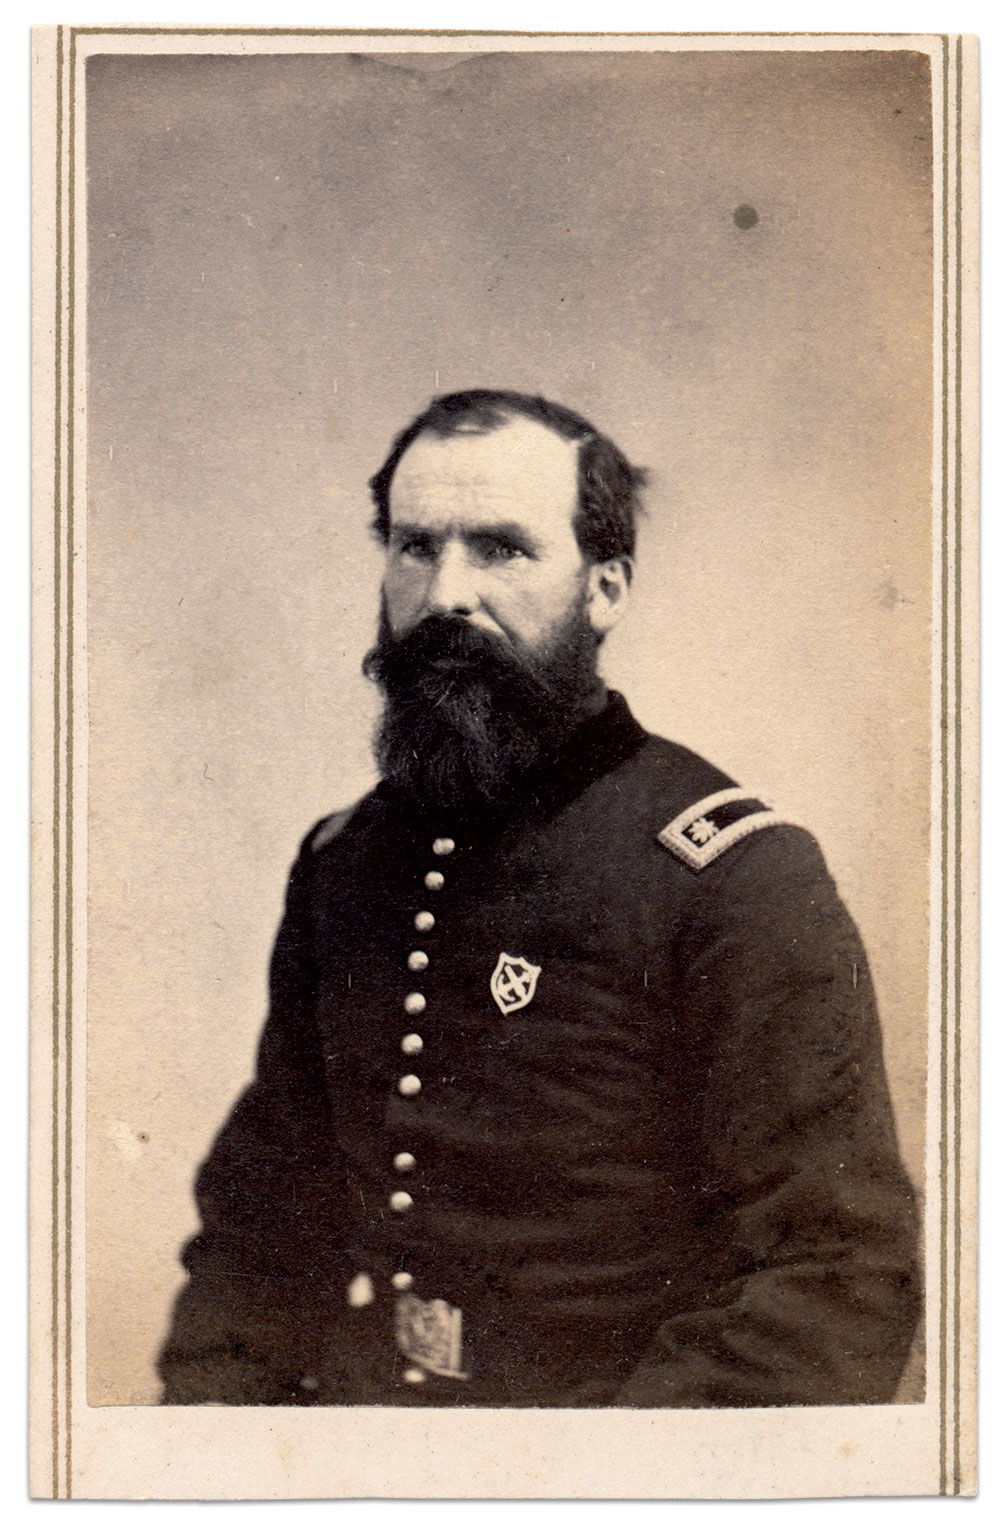 Carte de visite by Silvester Roe of Flushing, Long Island, N.Y. Author's Collection.